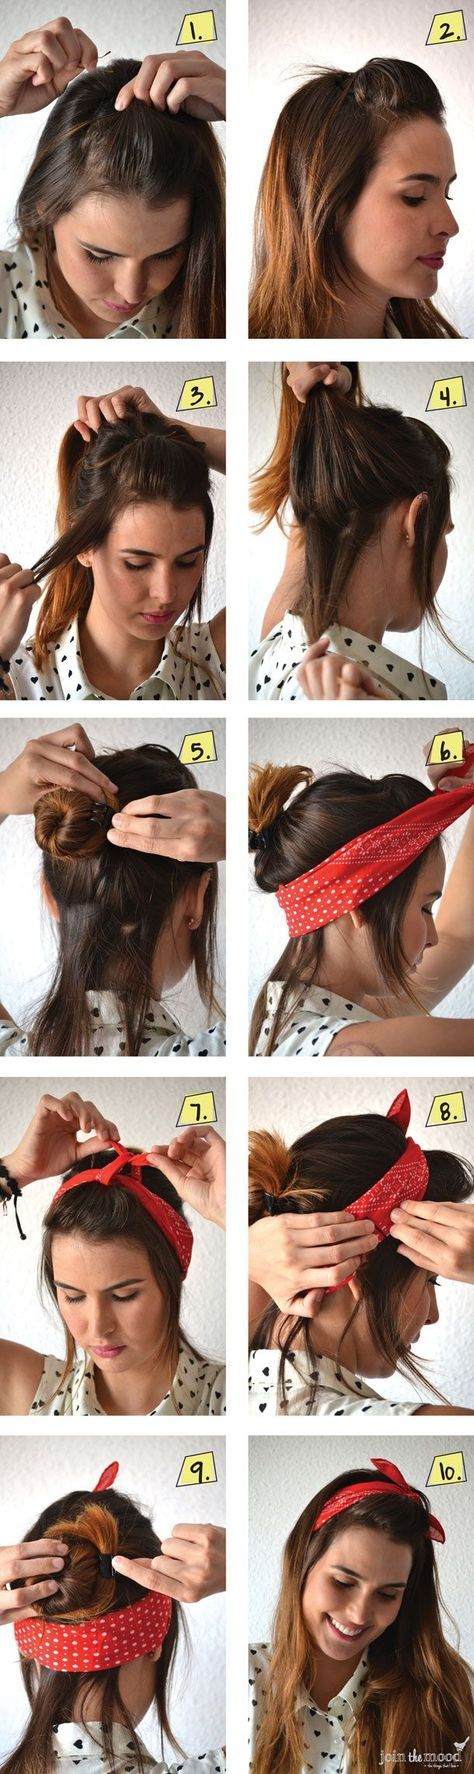 tutorials for bandana hairstyles in hair makeup and etc